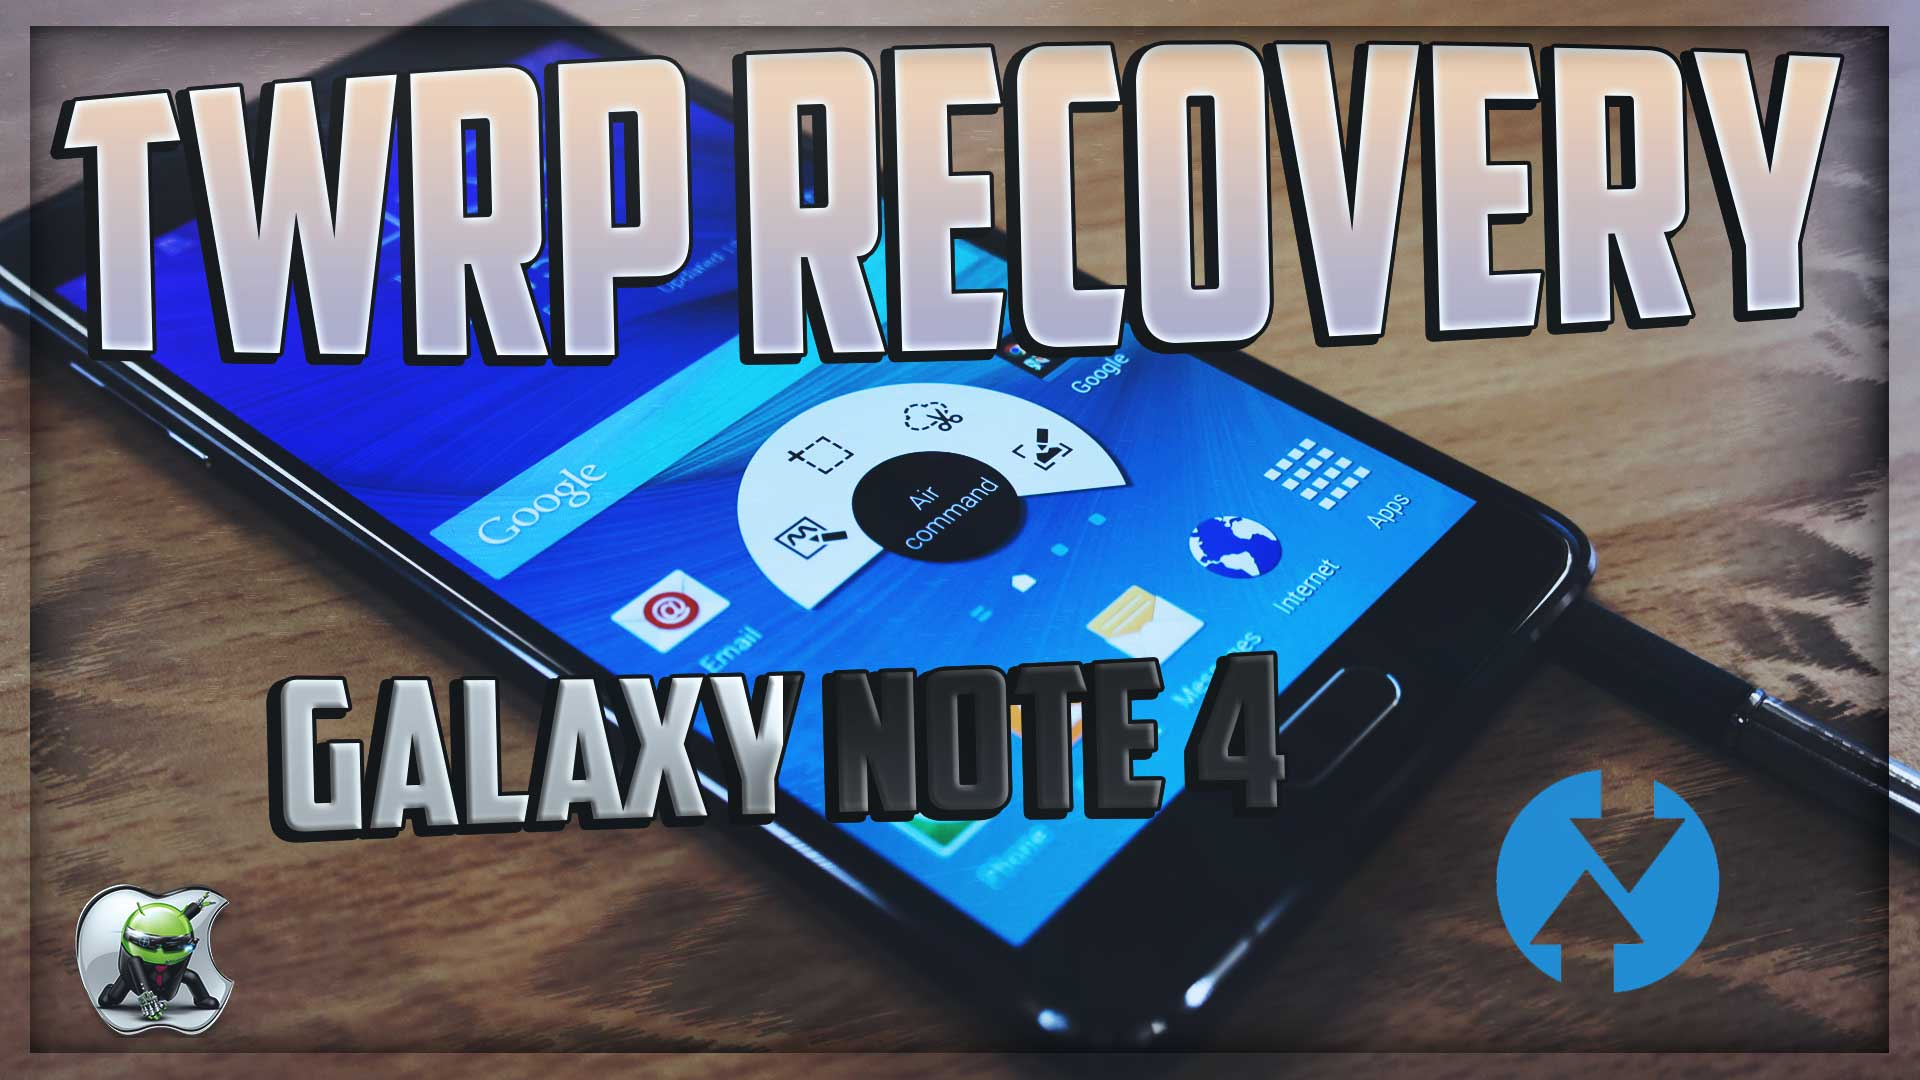 Custom Recovery Samsung Galaxy Note 4